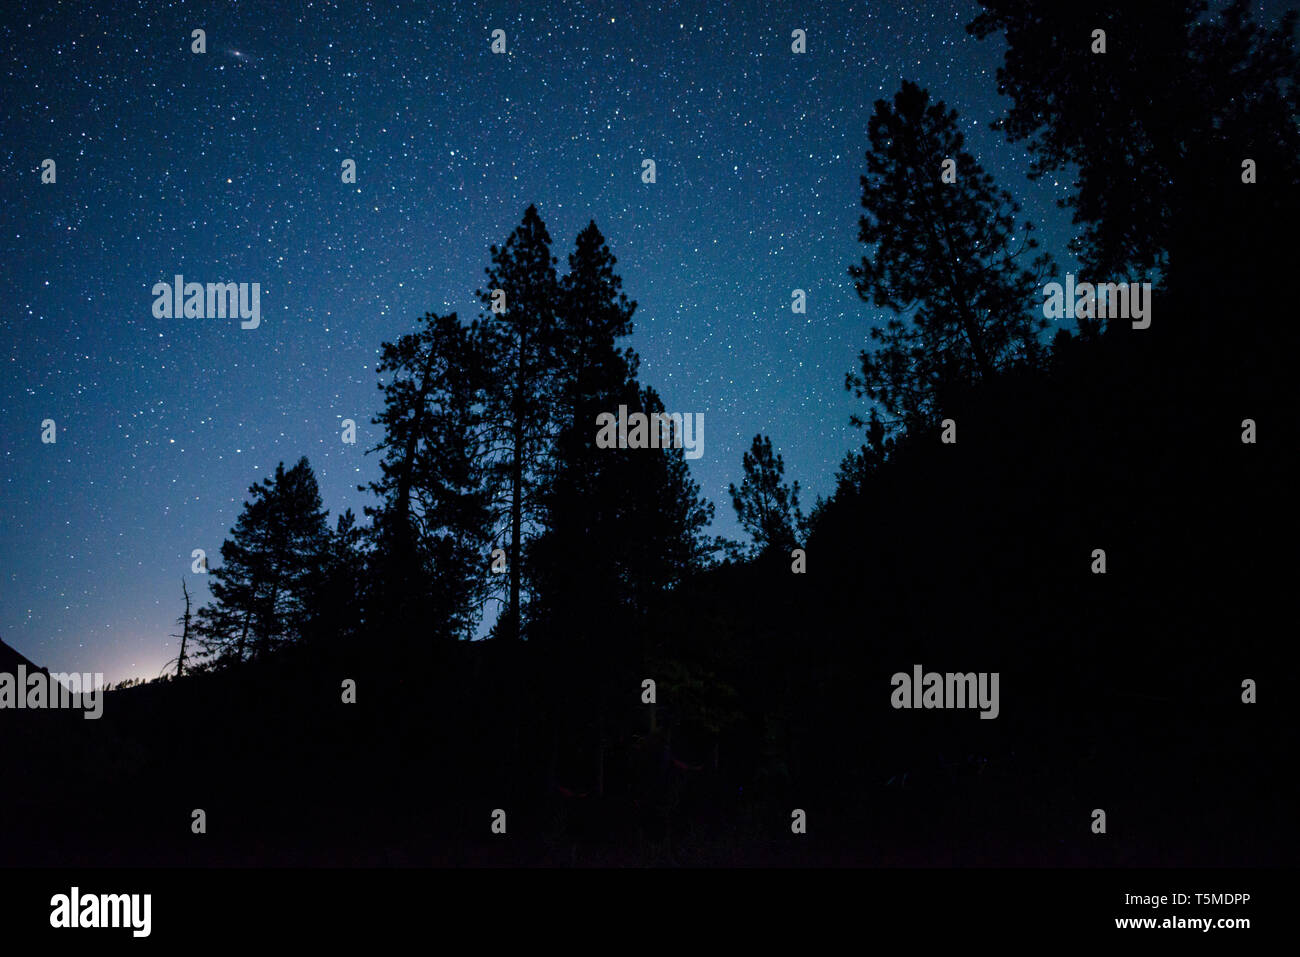 Blue Sky at Night with Brilliant Stars - Stock Image